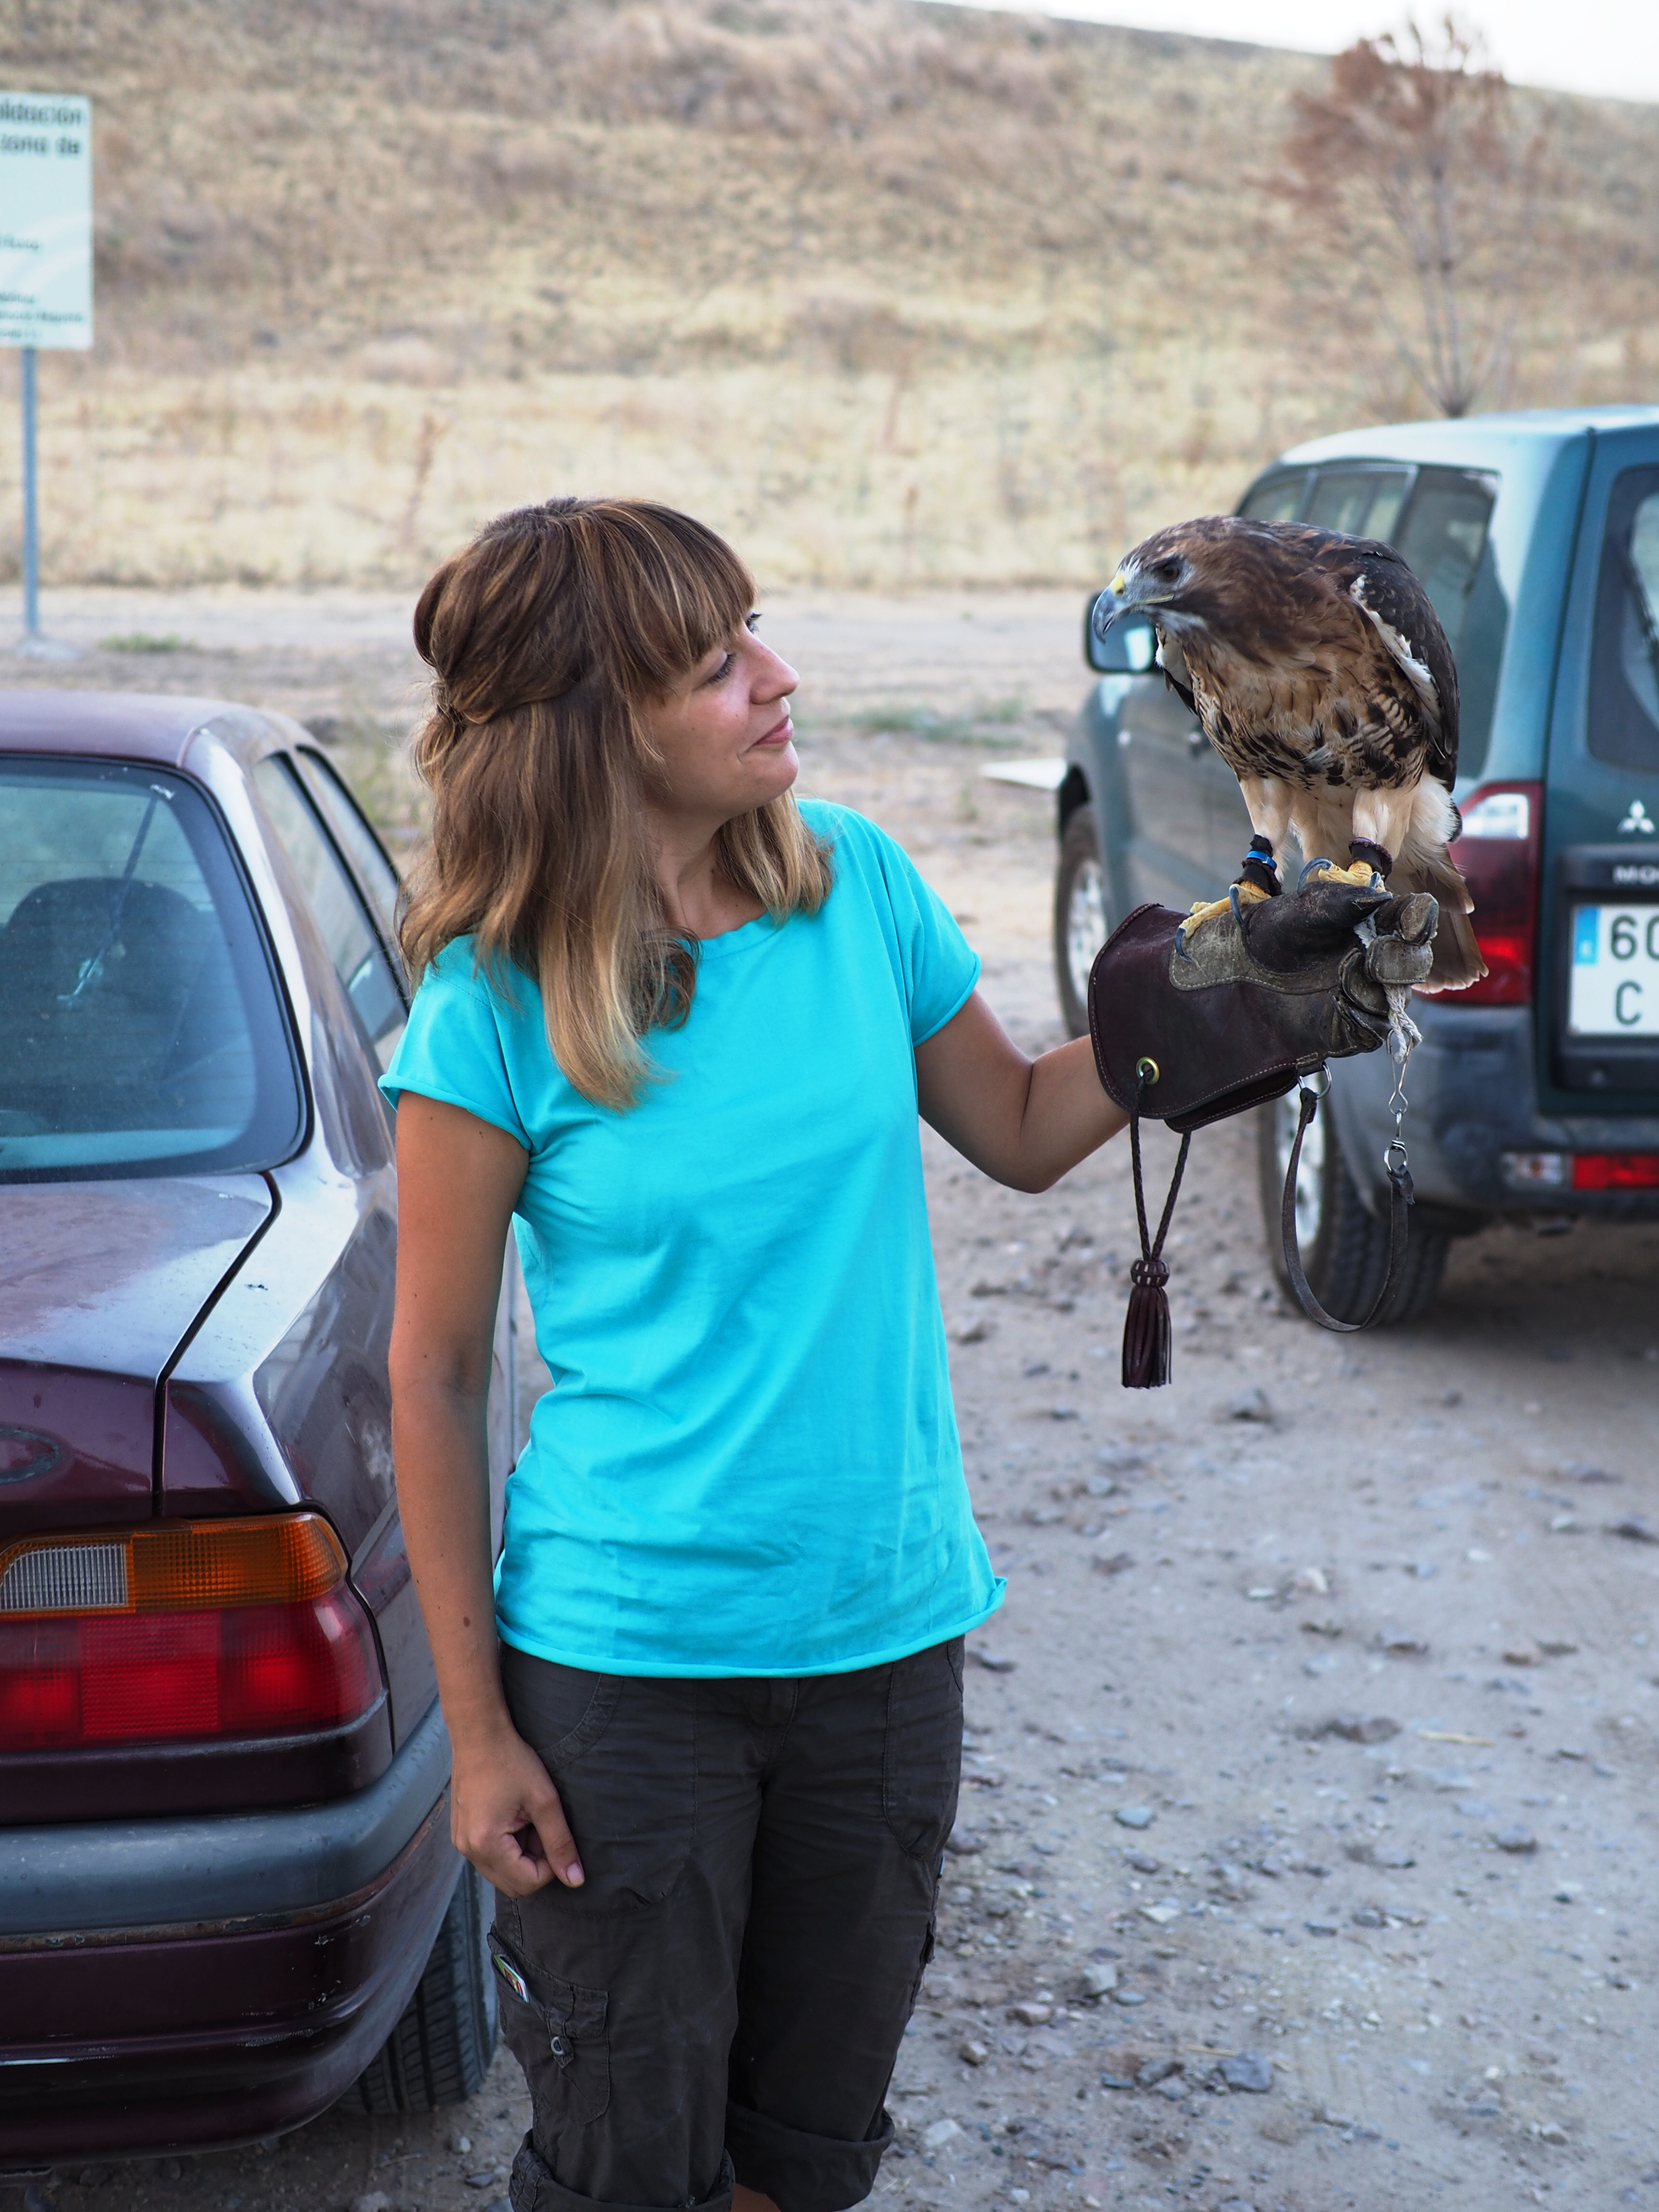 Woman with bird of prey.